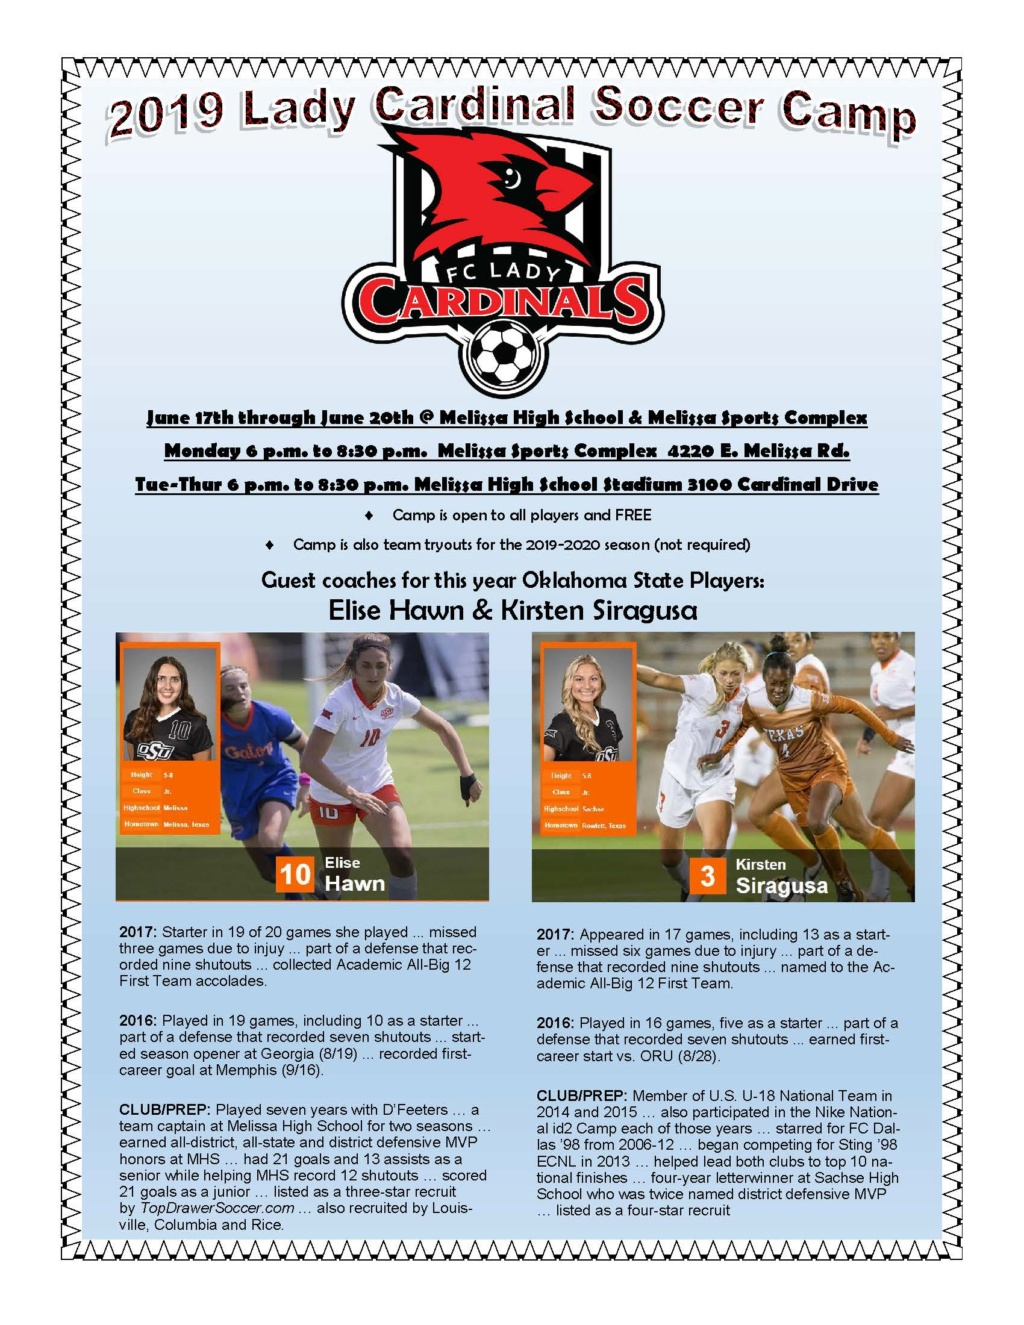 Free Soccer camp (coached by Ok St players) Summer14